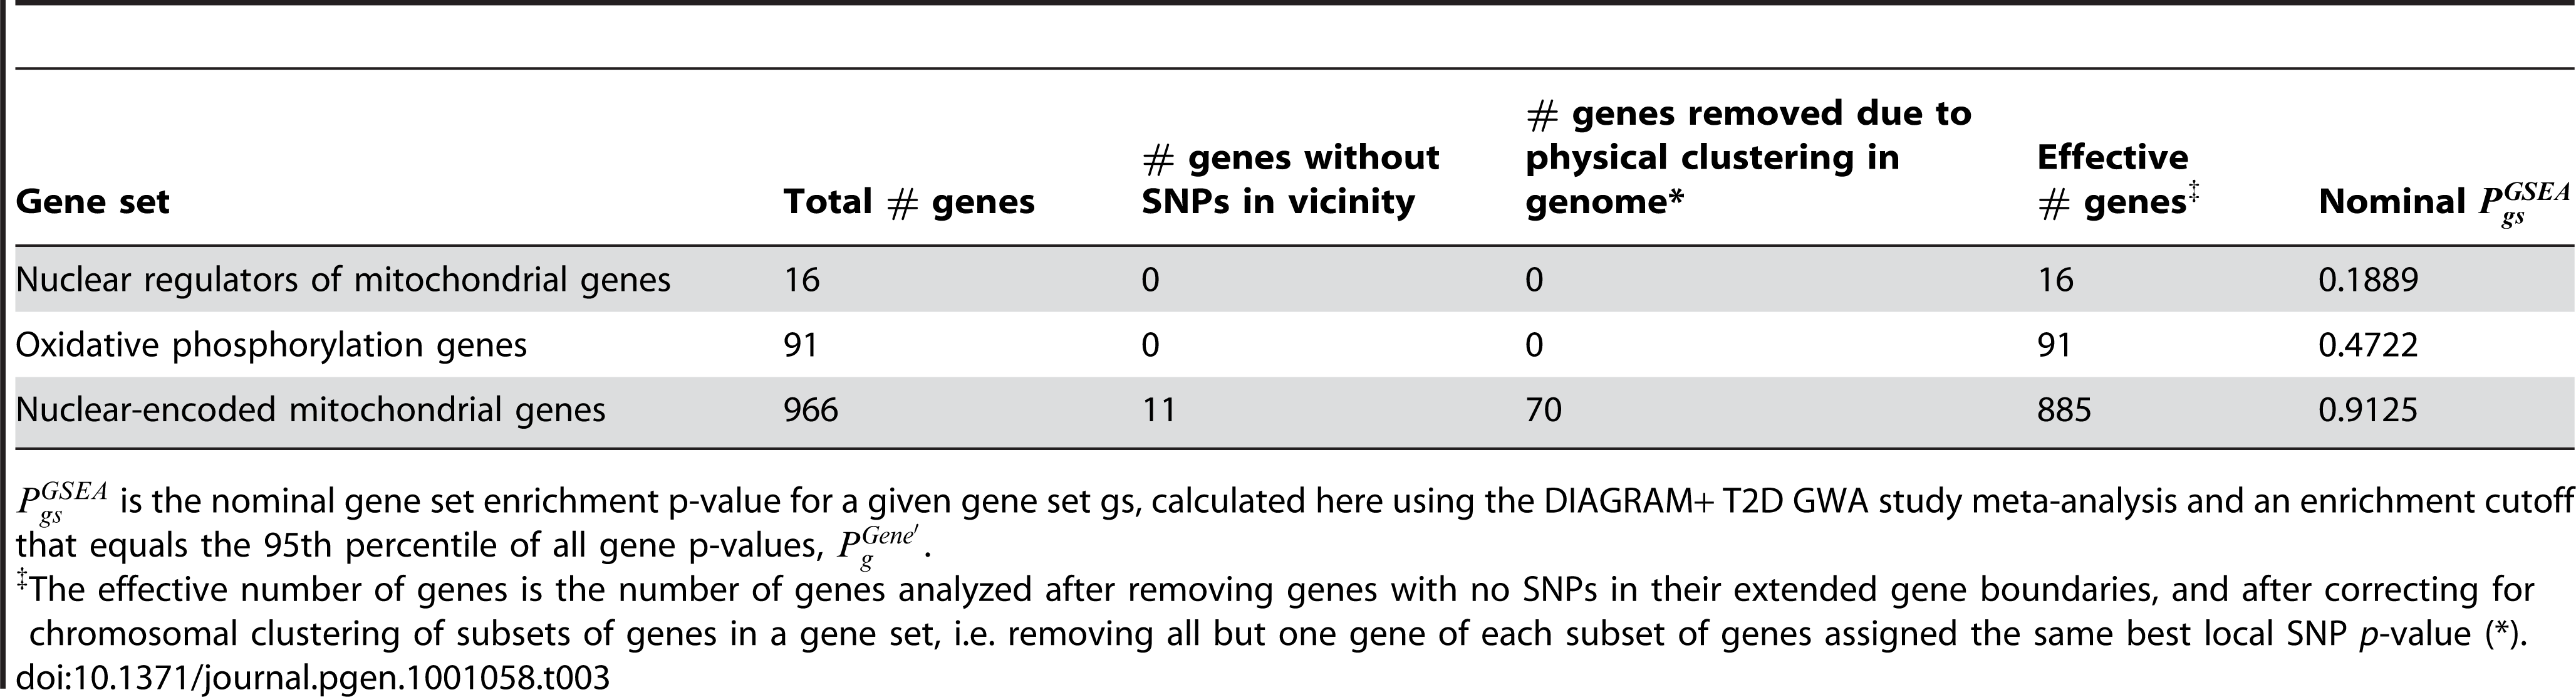 Mitochondria-related gene sets are not enriched for associations with type 2 diabetes.